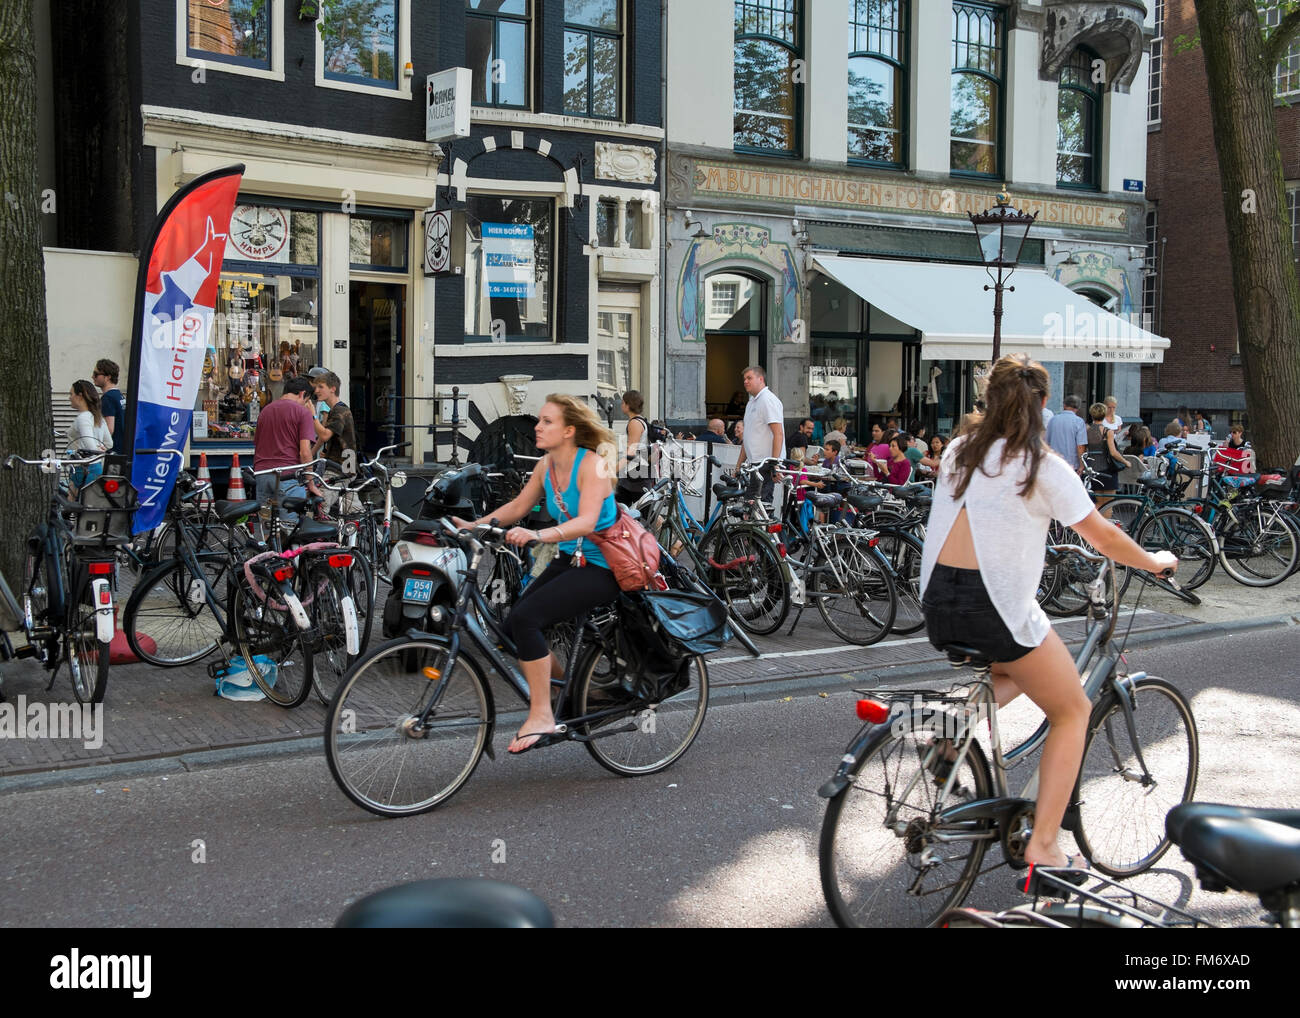 Women cycling in Amsterdam. - Stock Image